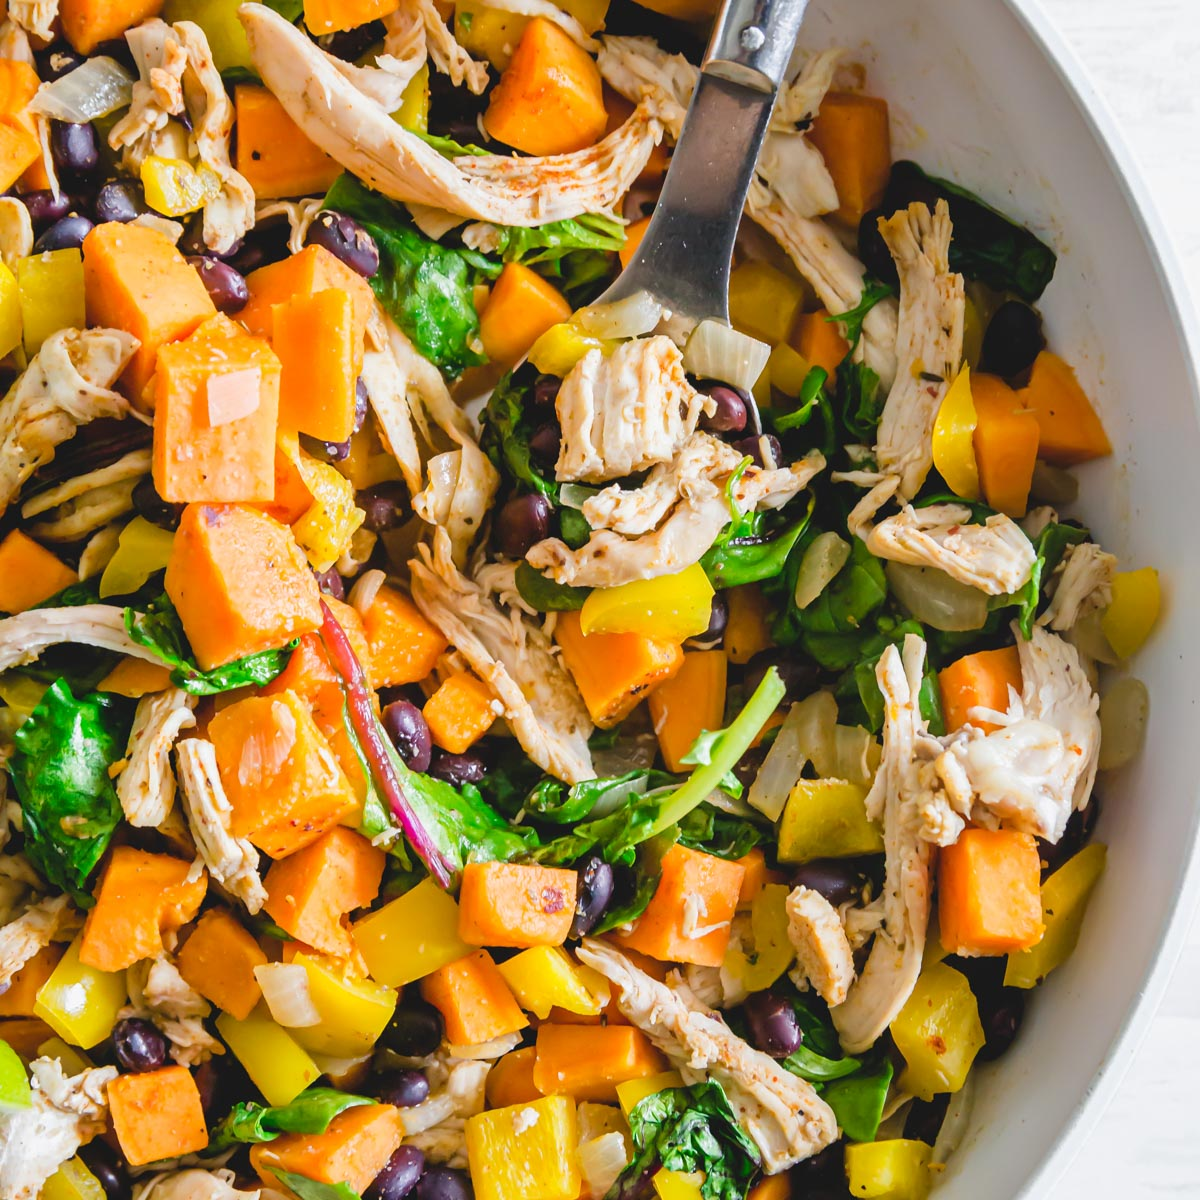 An easy meal perfect for using up leftover turkey from Thanksgiving with sweet potatoes, black beans, peppers, onions and baby greens.